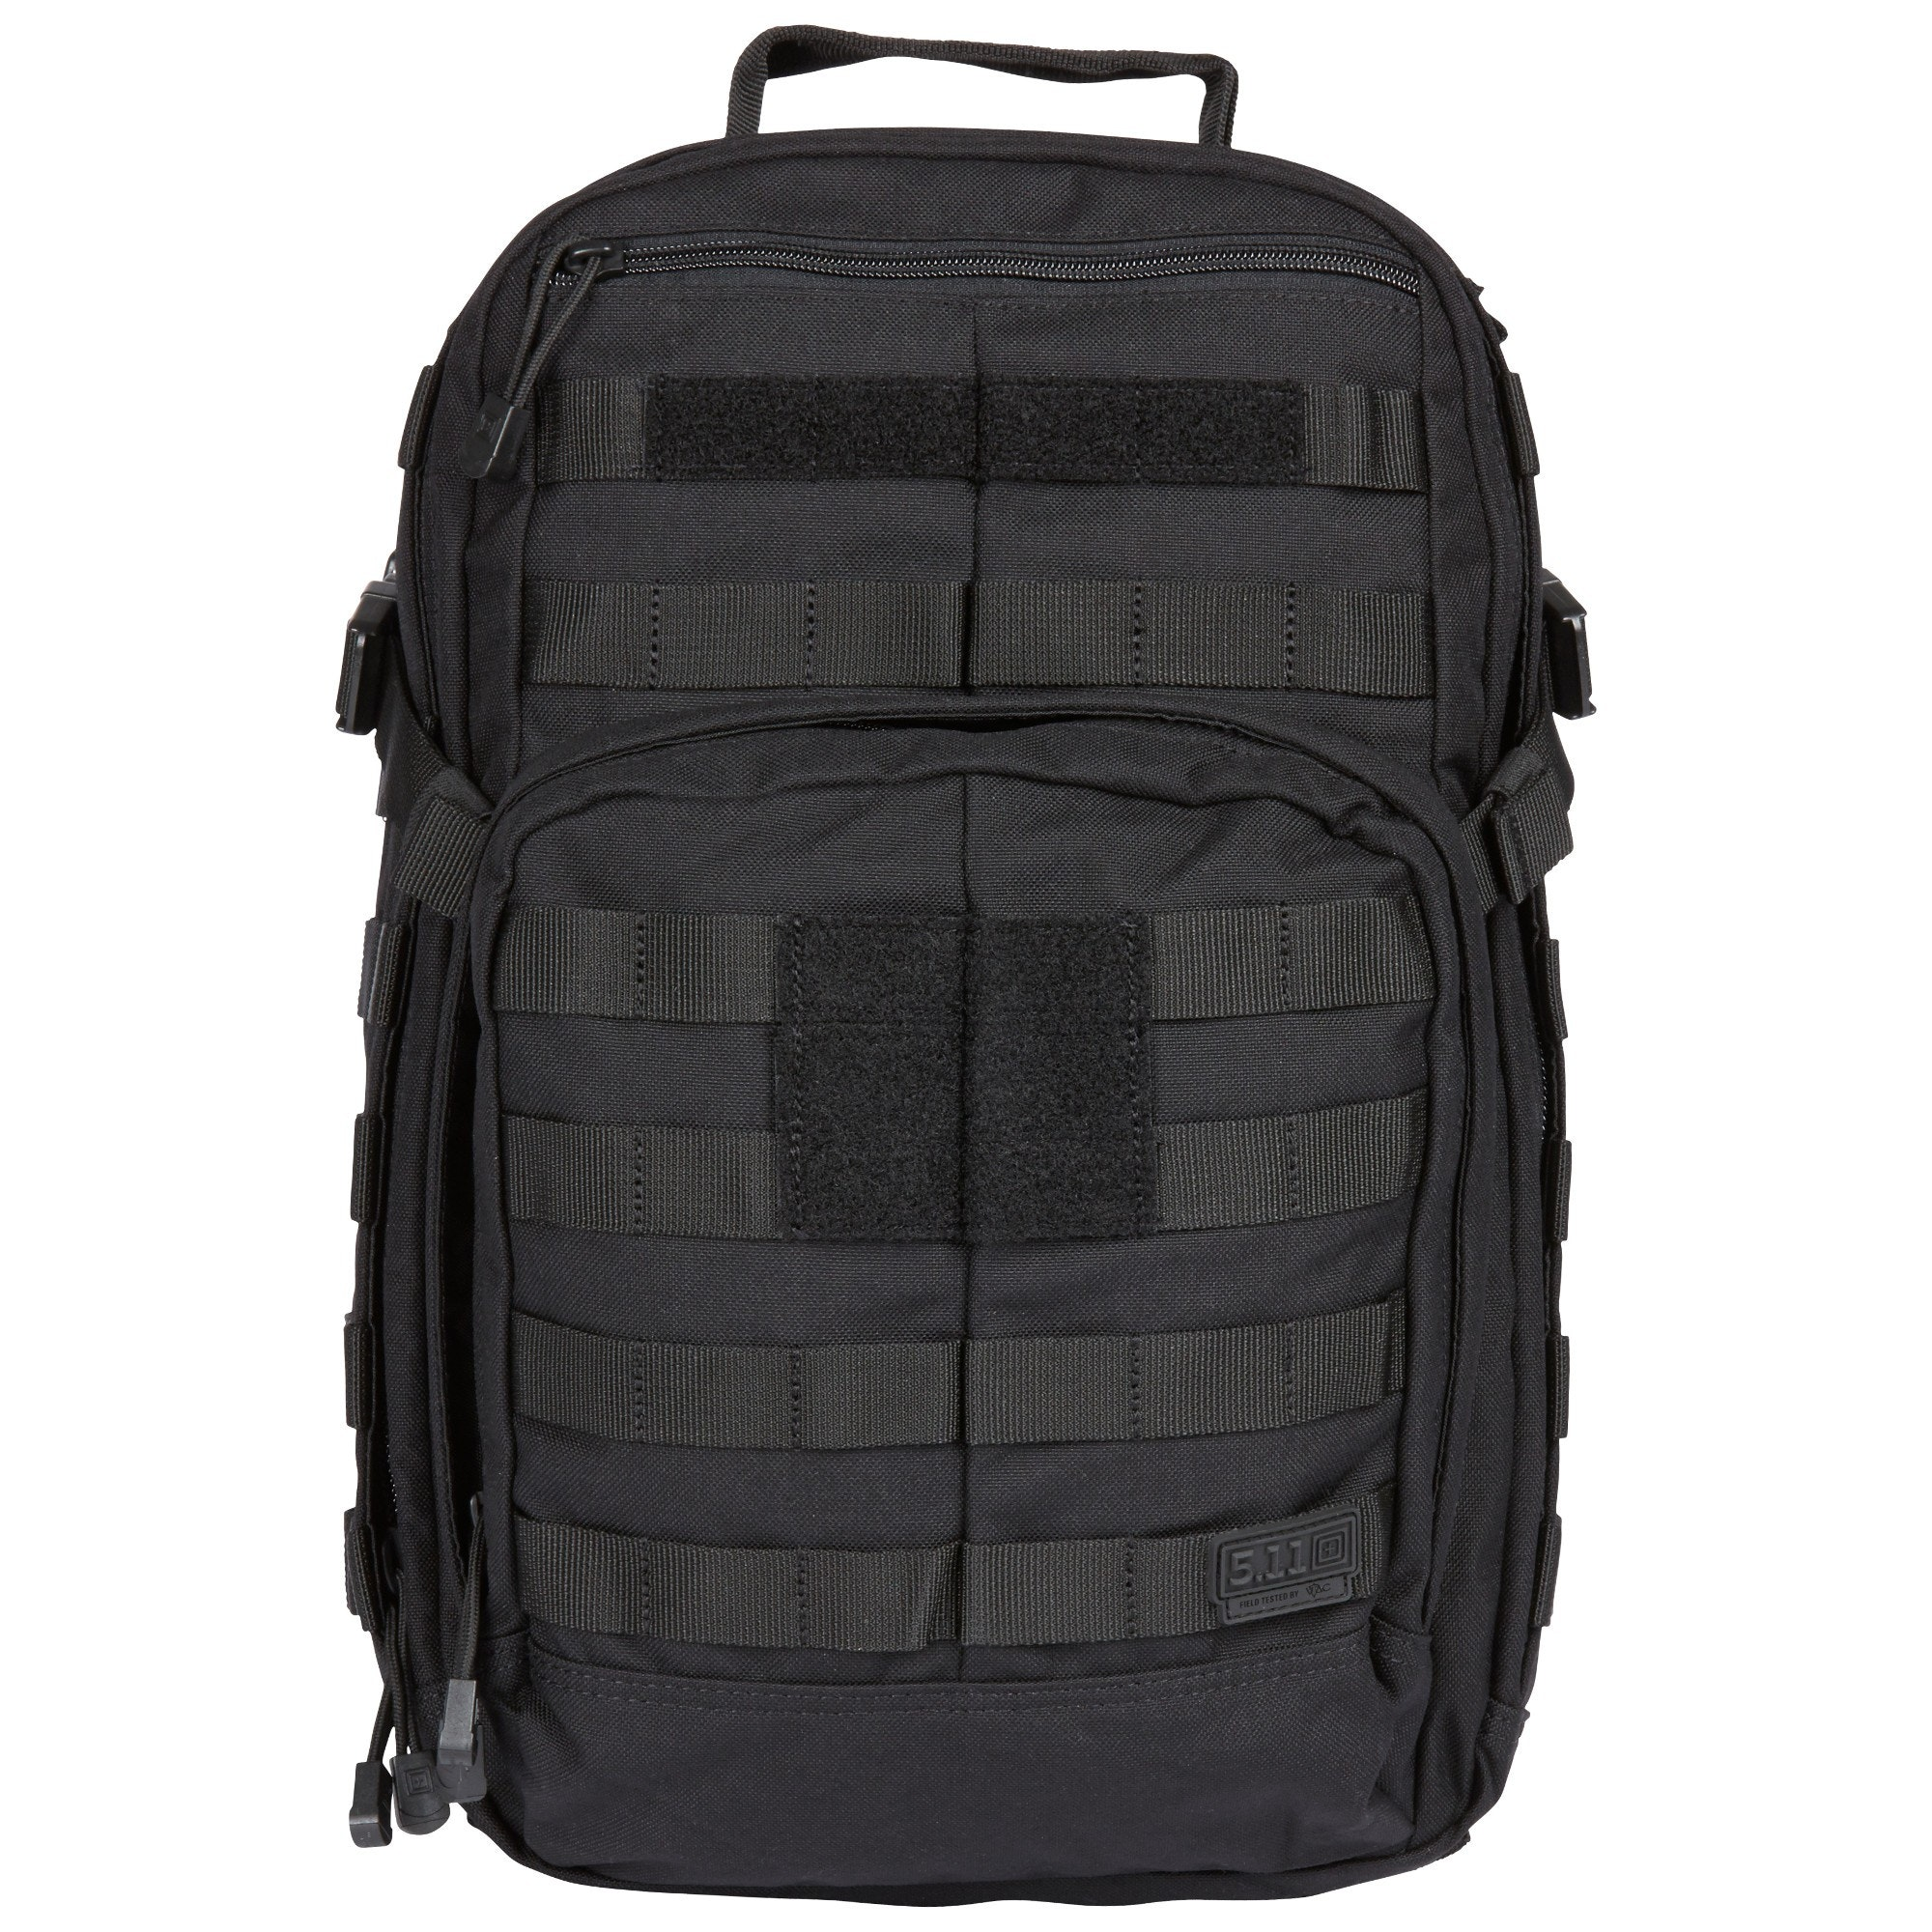 5.11 Tactical All Hazards Prime Backpack | Official 5.11 Site